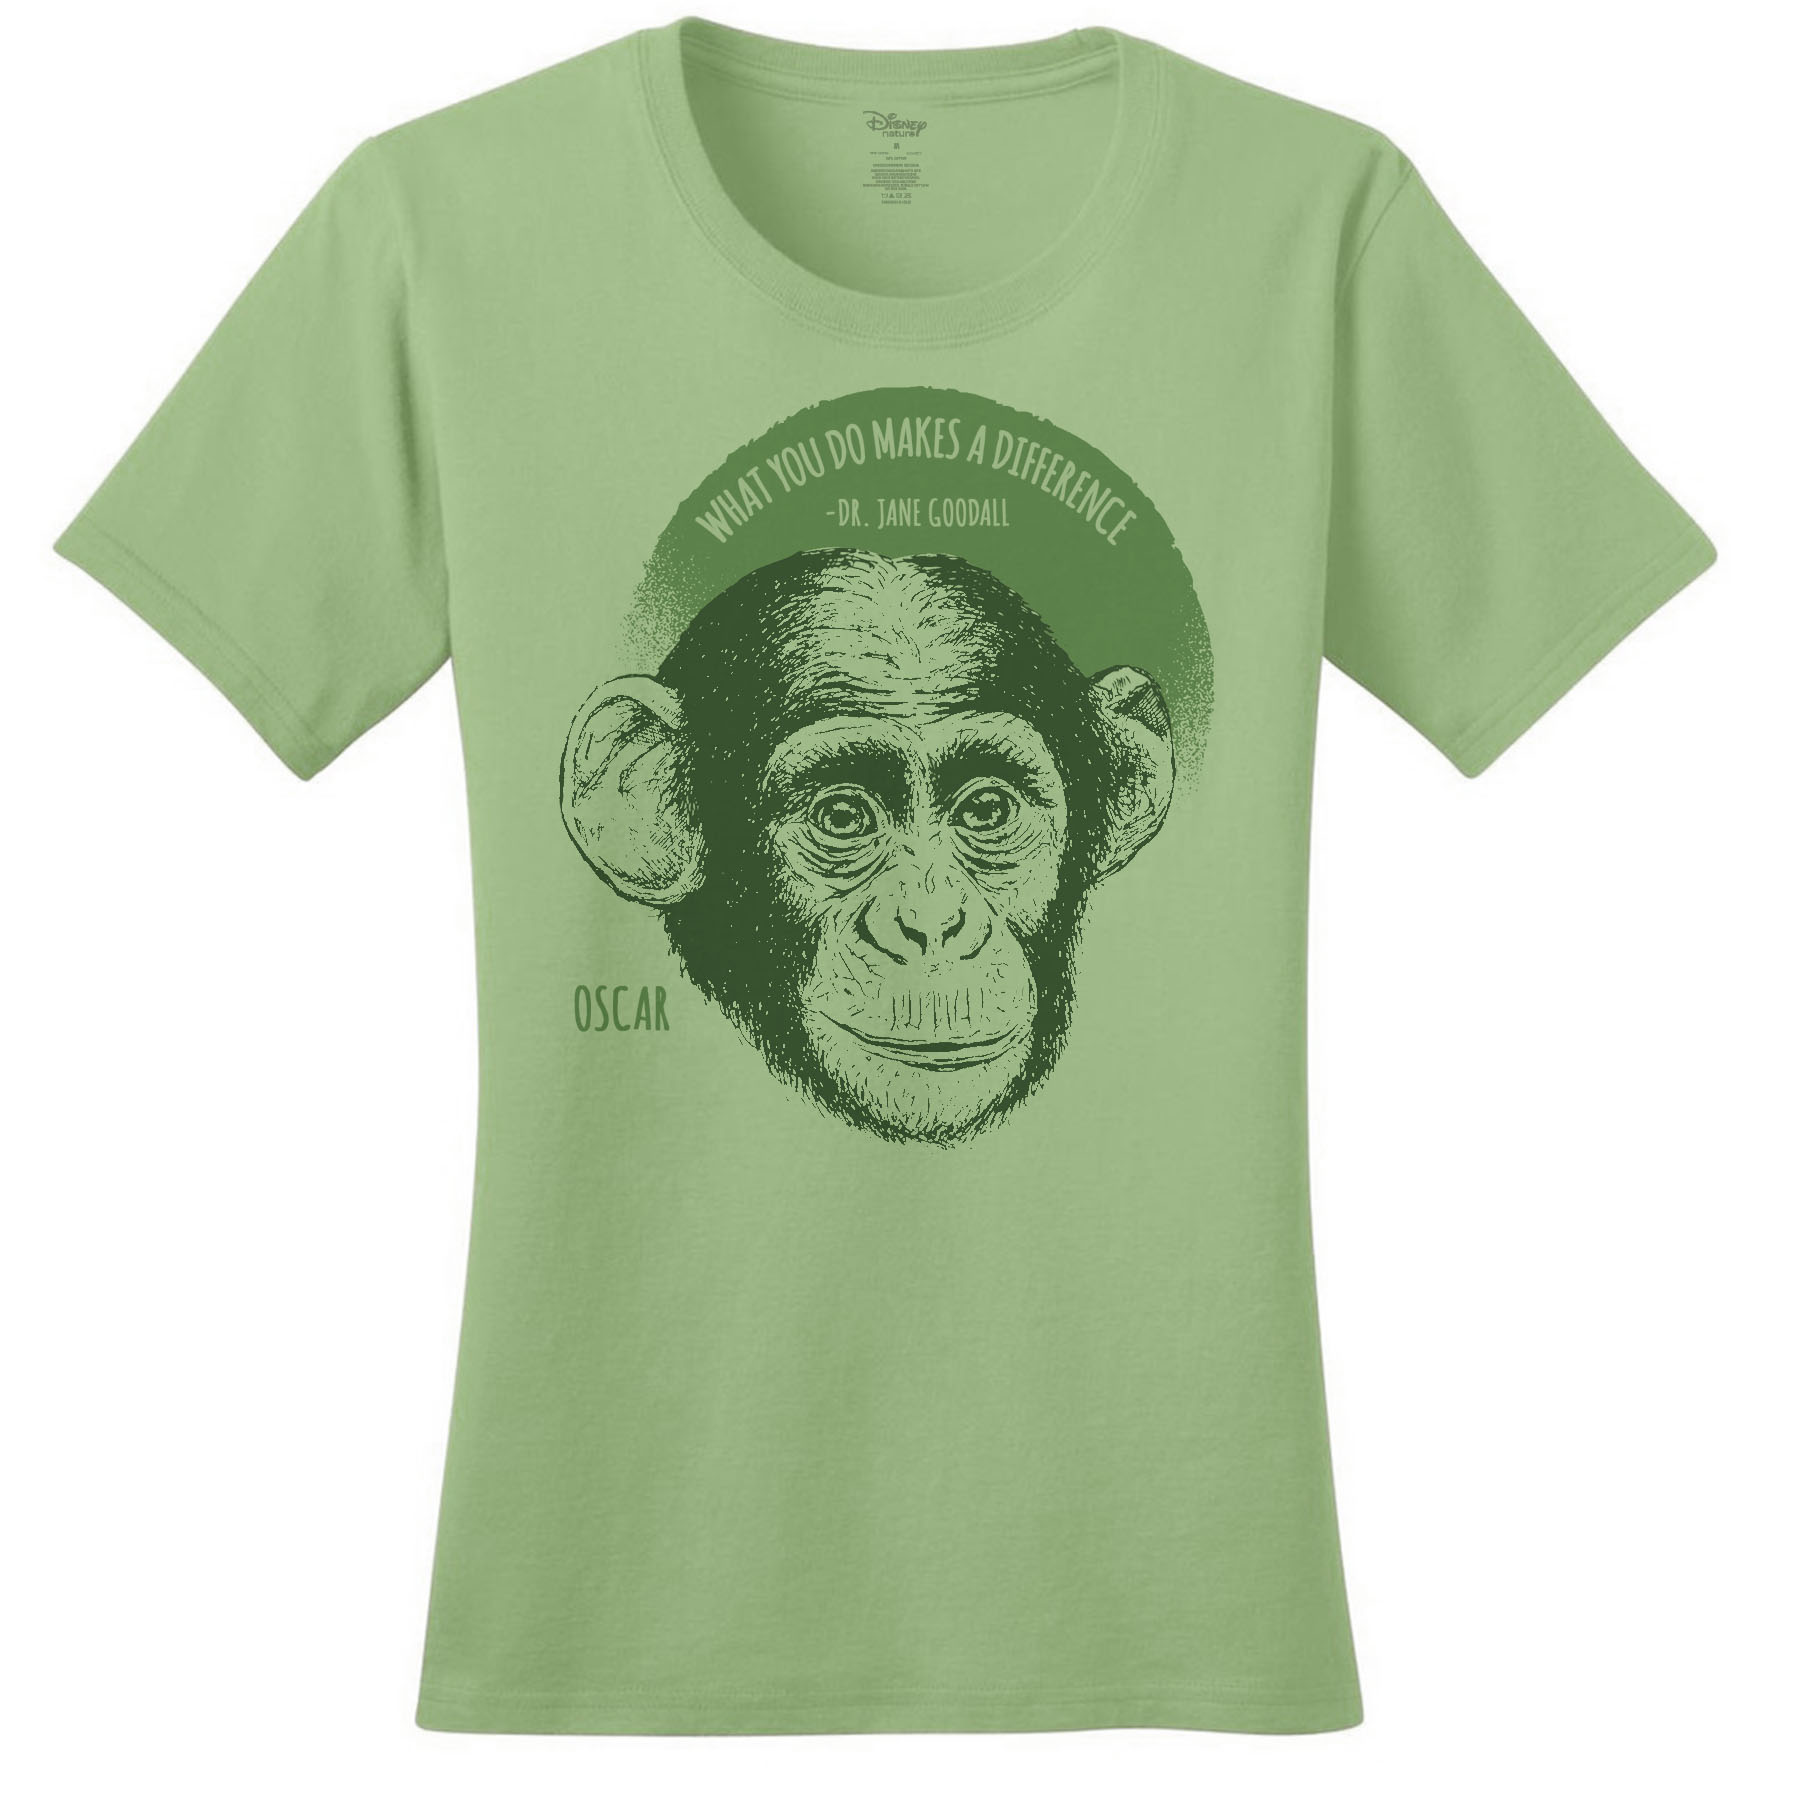 Disneynature + JGI Oscar Quote Women's T-Shirt